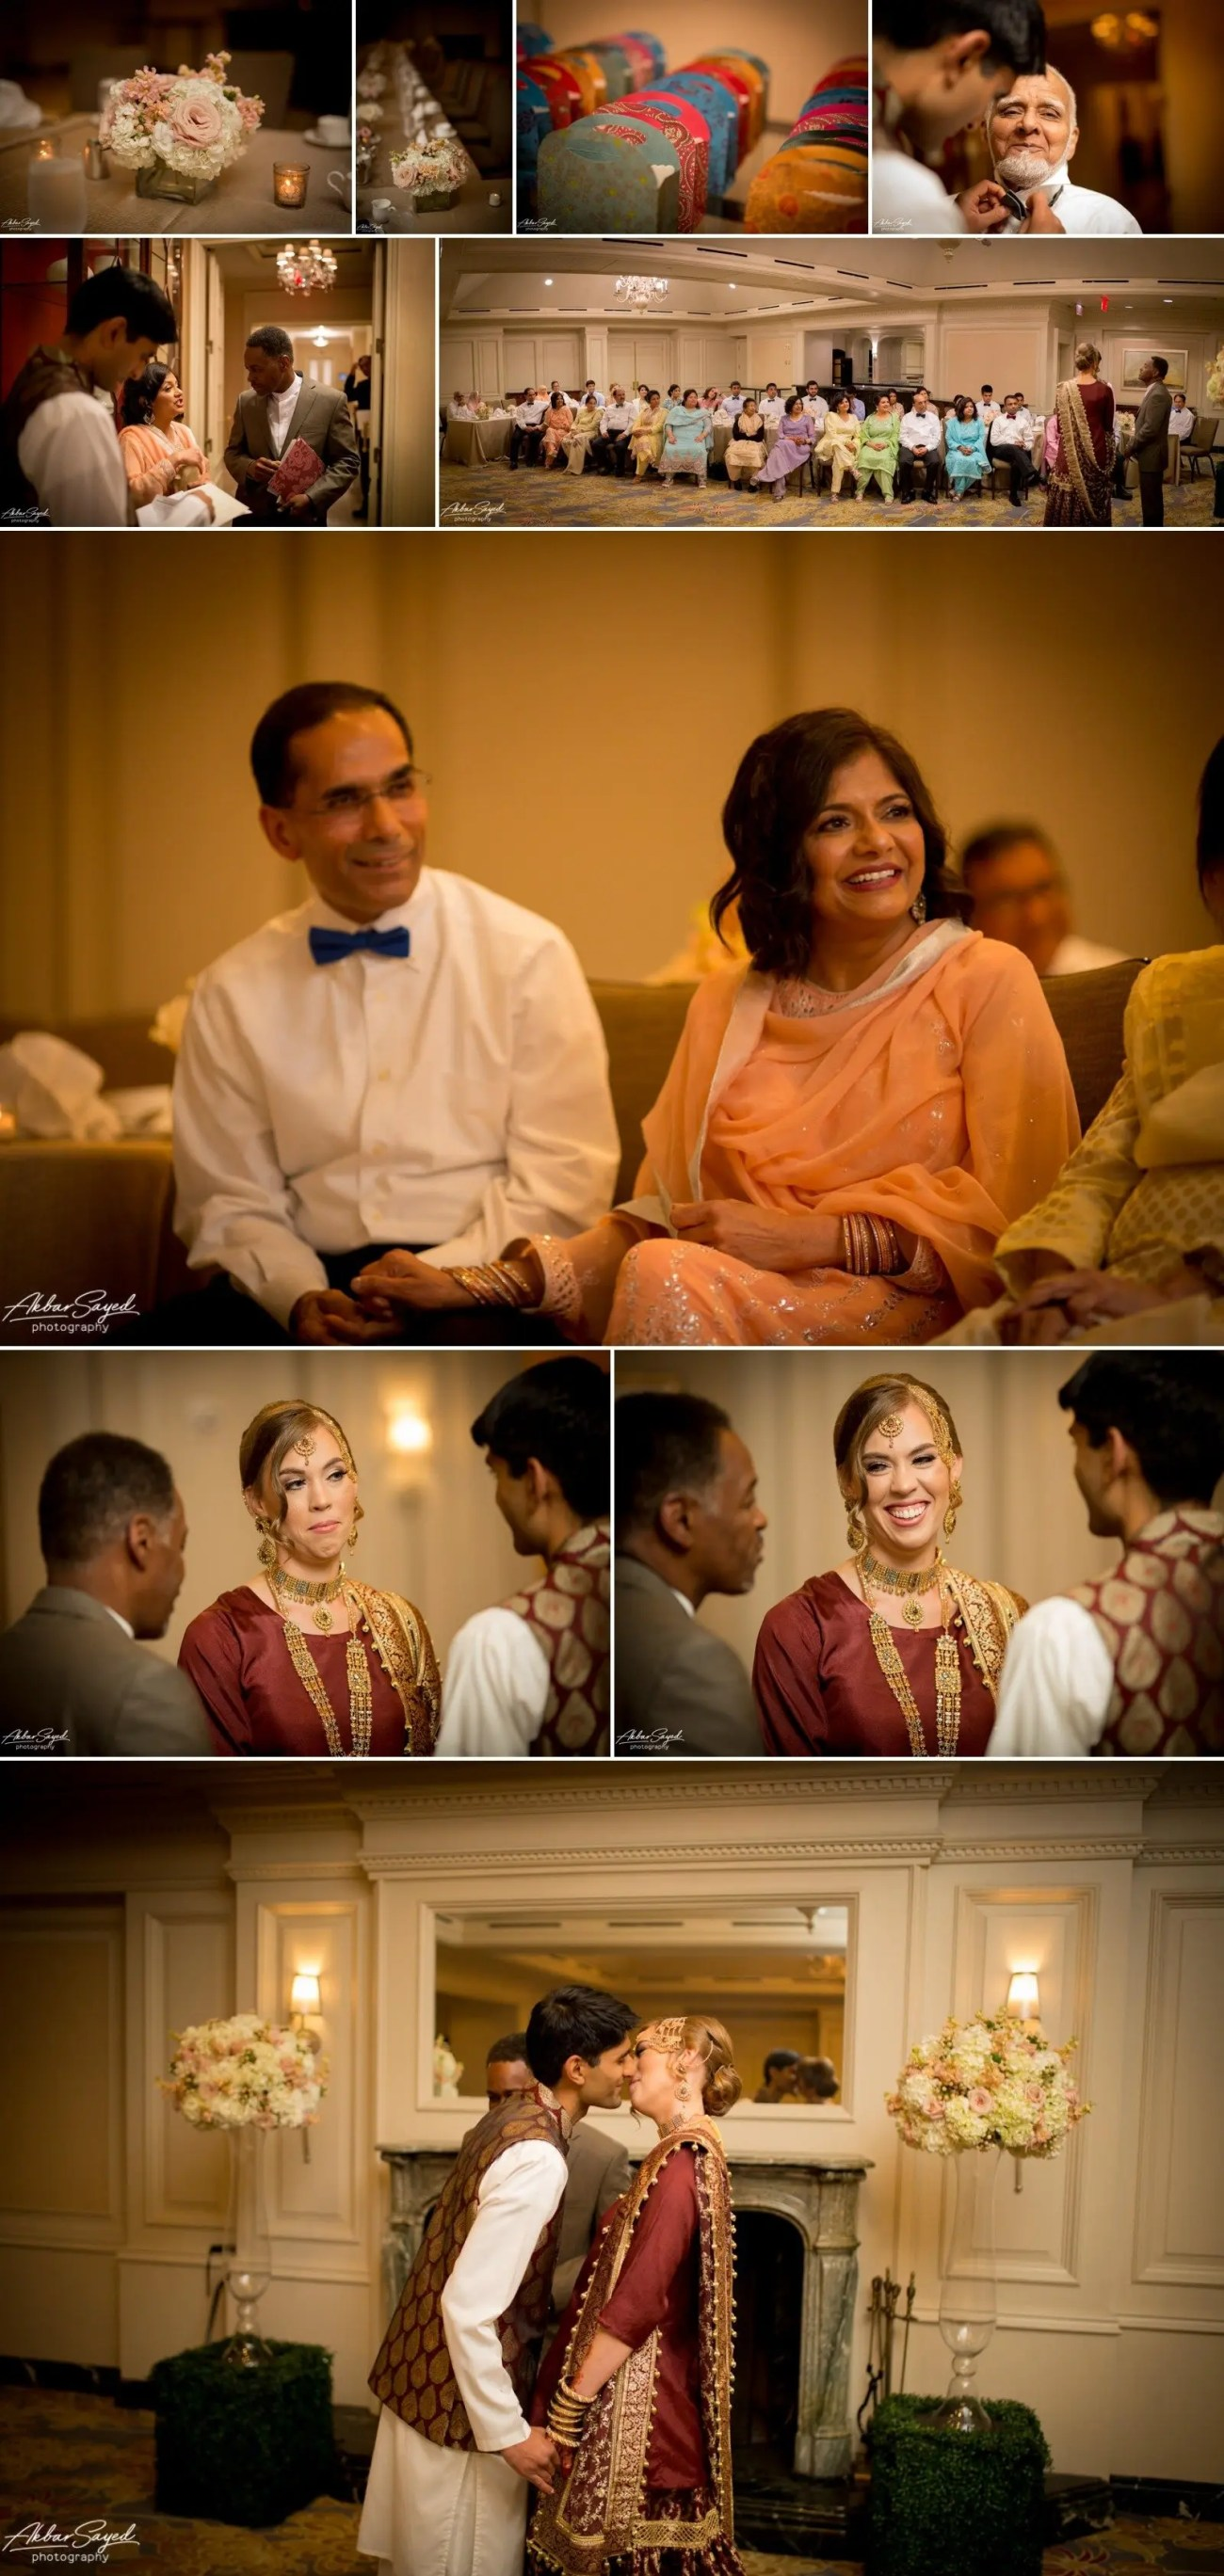 A photo collage of a Nikkah (Muslim wedding ceremony) at the Ritz-Carlton in Pentagon City.